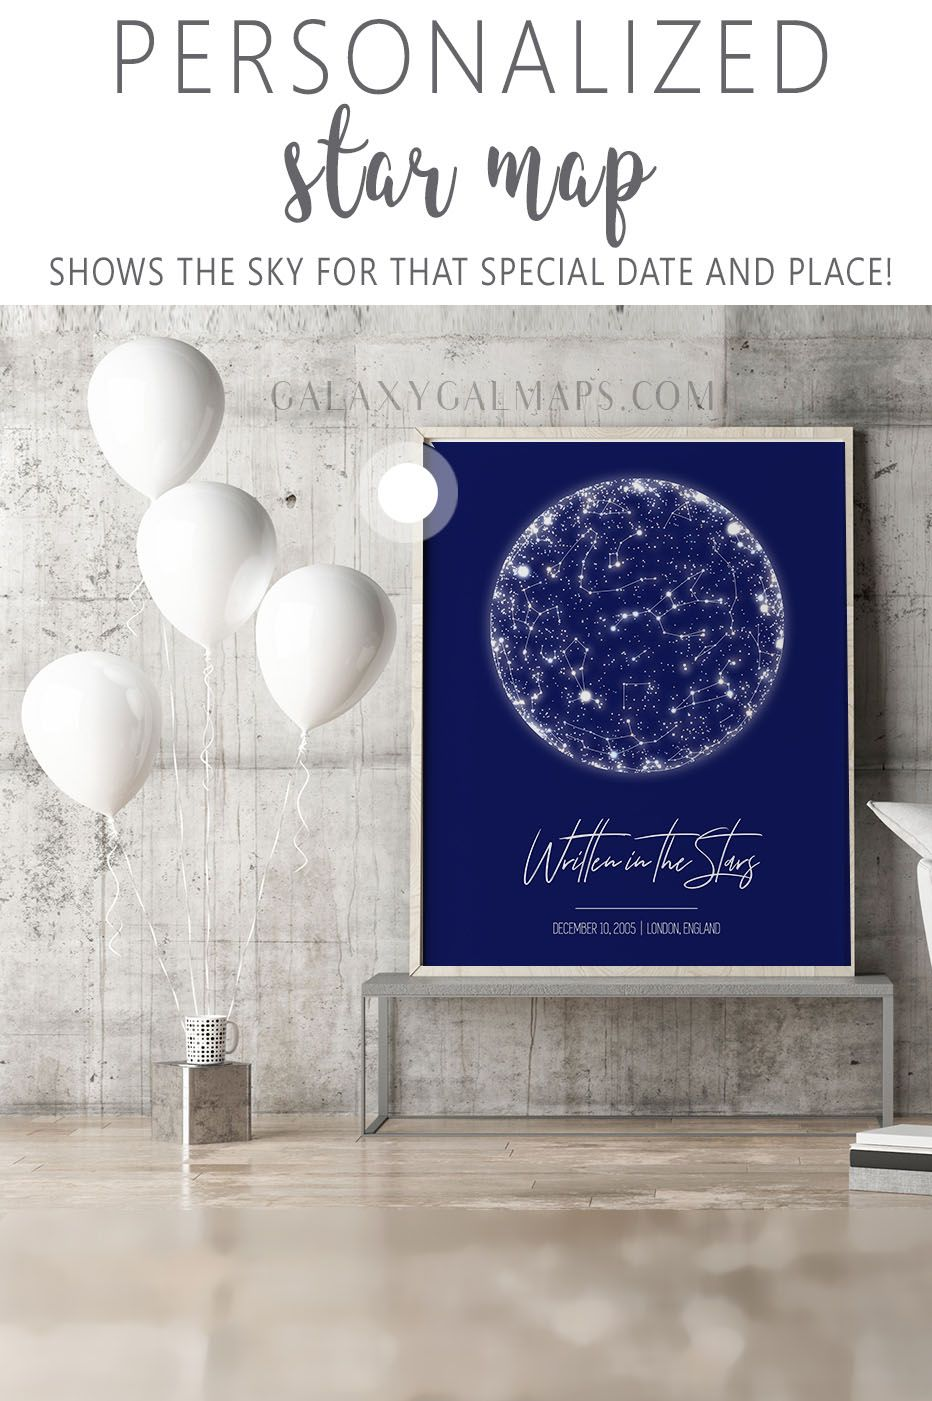 Night Sky Map For That Special Date Home Decor Gift Ideas Gold Foil Custom Lunar Phases Jedi Art Sagittarius Star Map Constellation Print Huge Wall Art